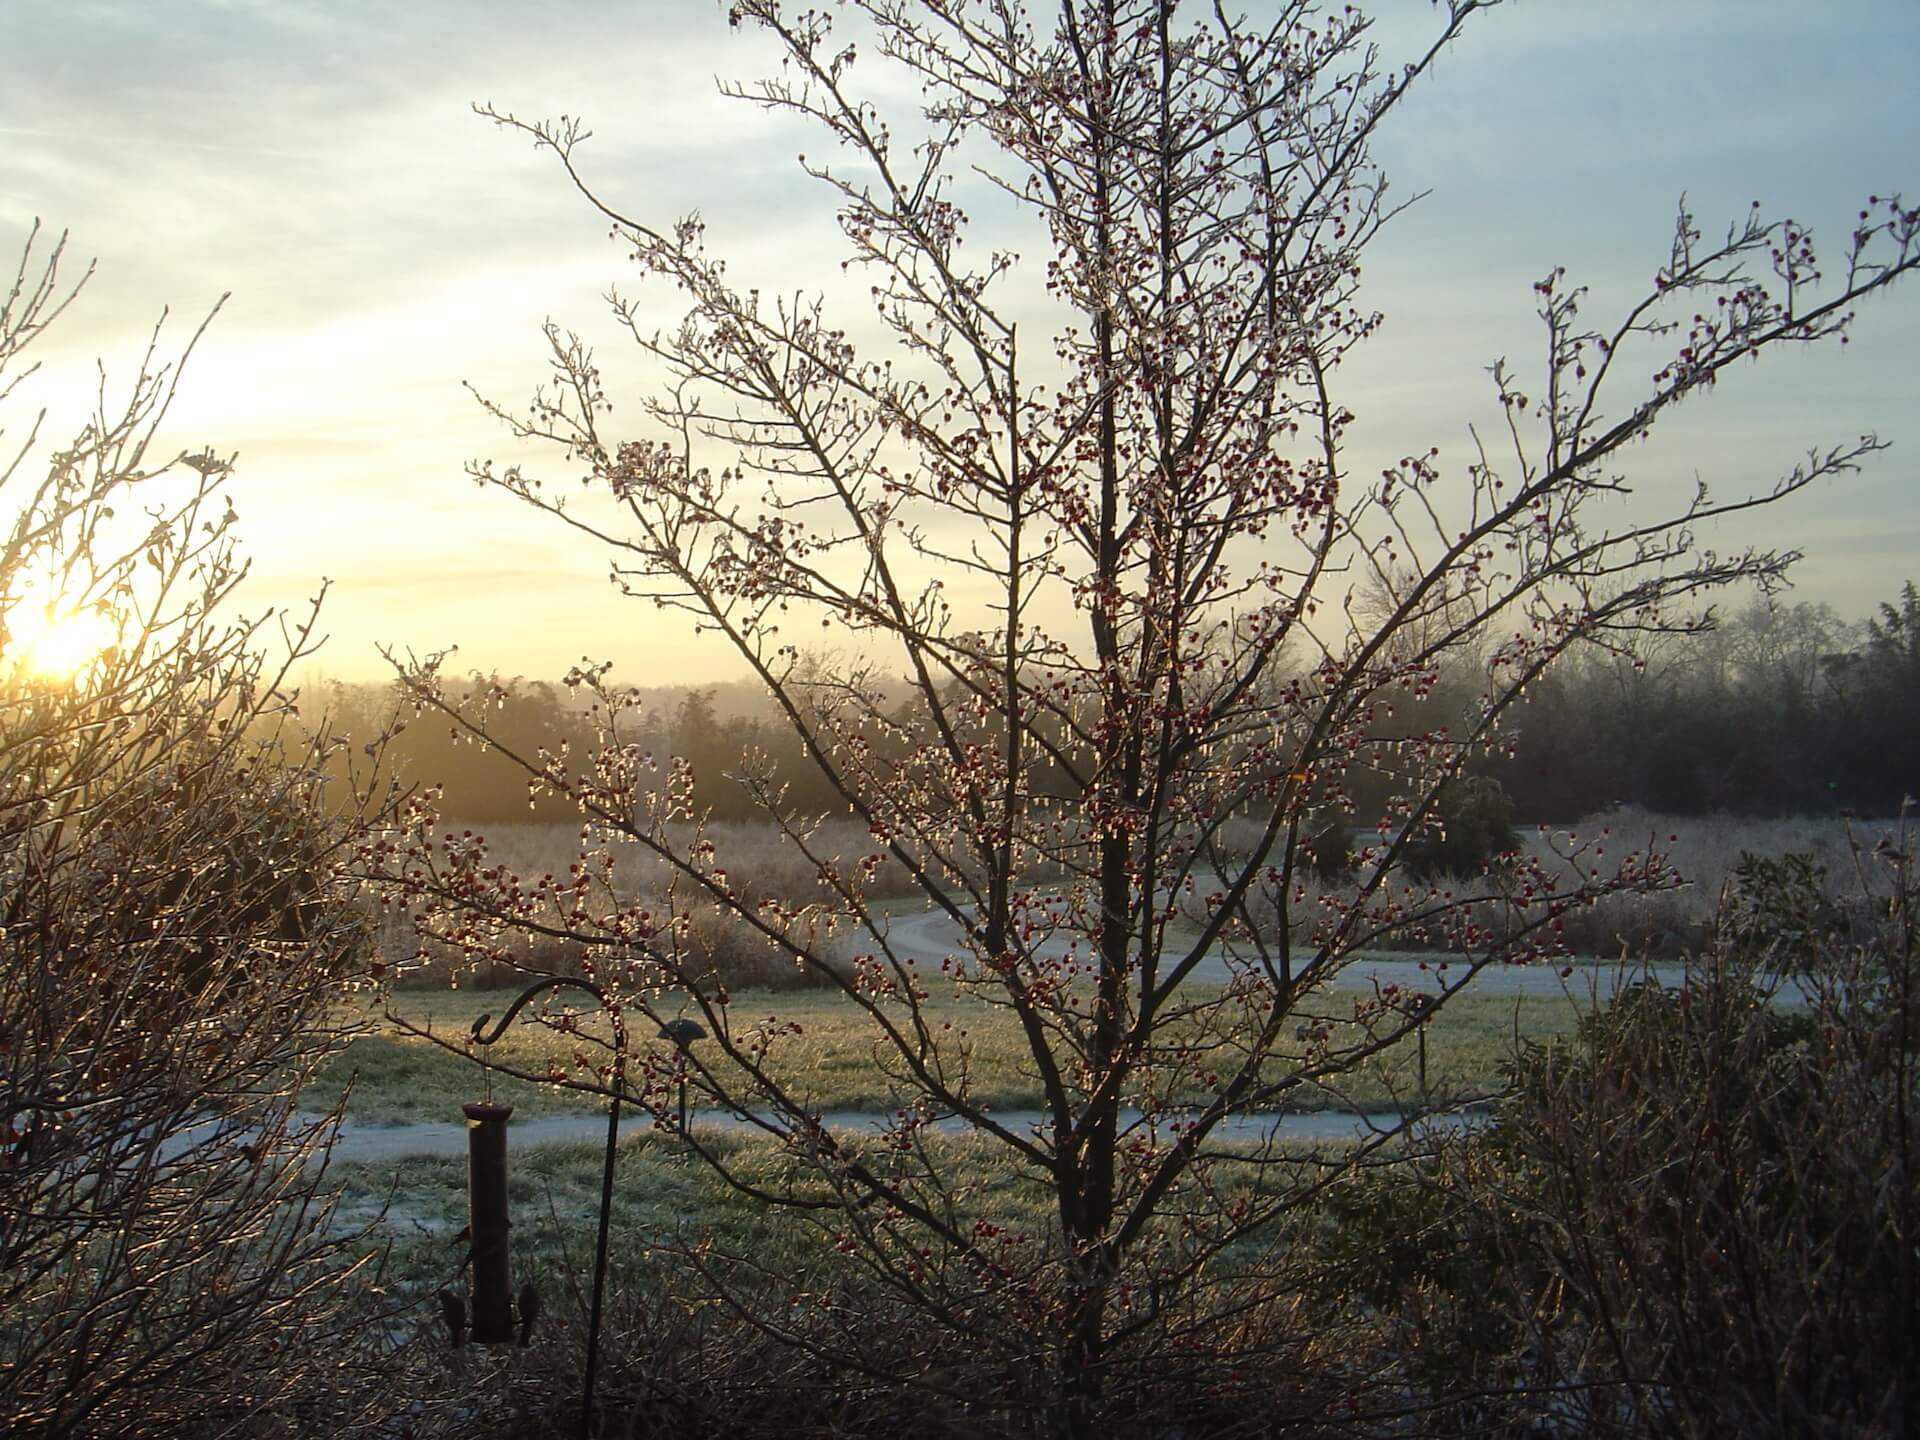 evening photo of tree, with meadow behind